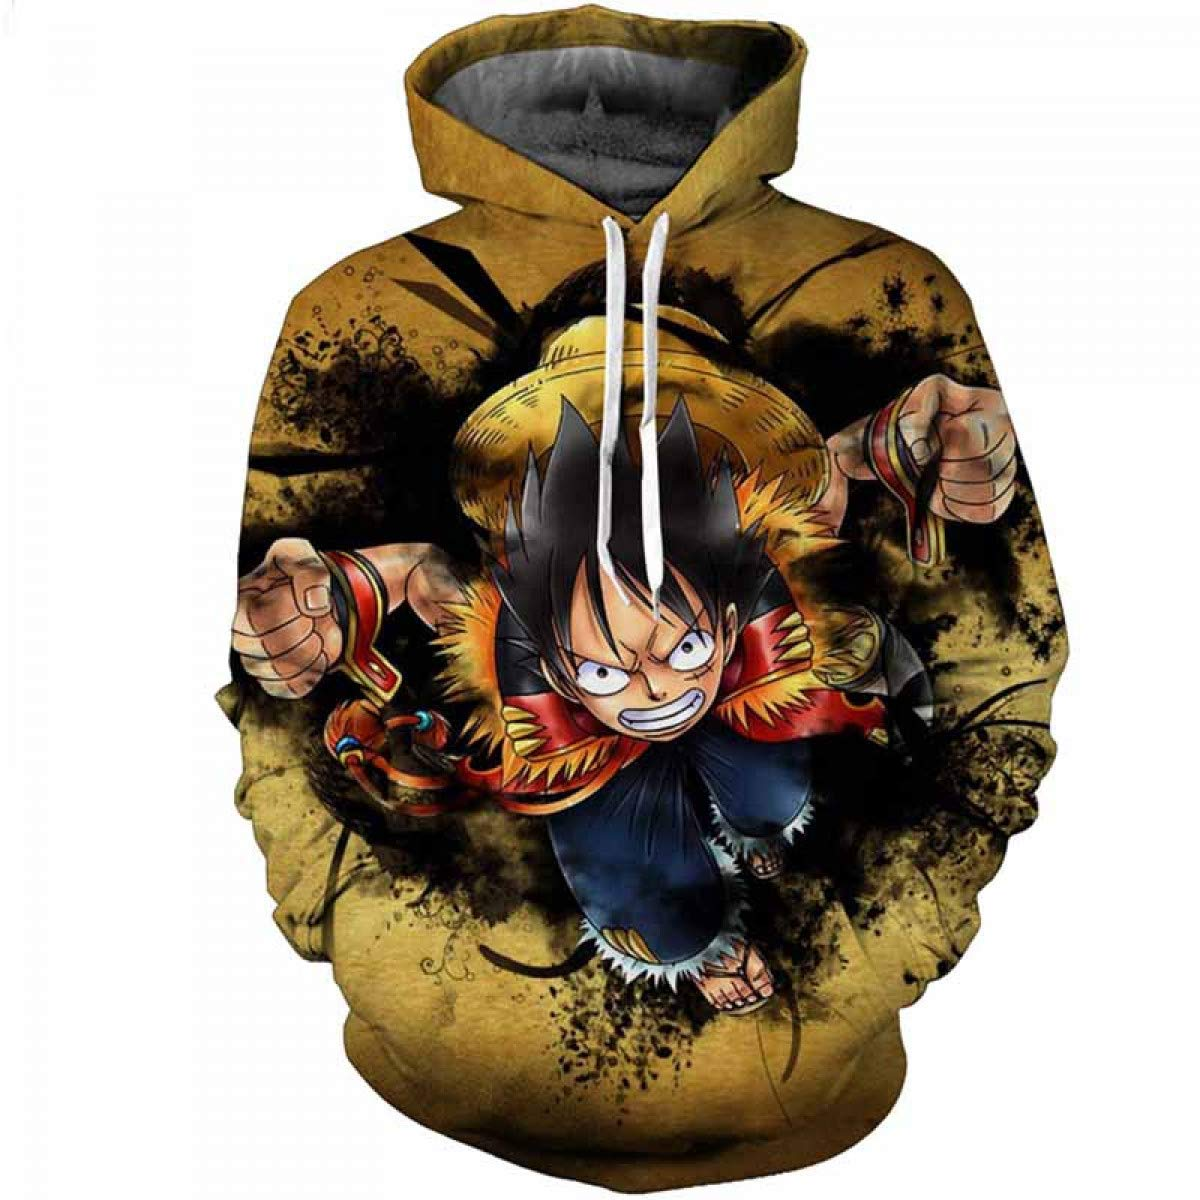 Amazon.com: FLAMINGO_STORE one Piece Hoodie 3D Hoodies Men Clothes Sweatshirts One Piece Luffy Pullovers: Clothing